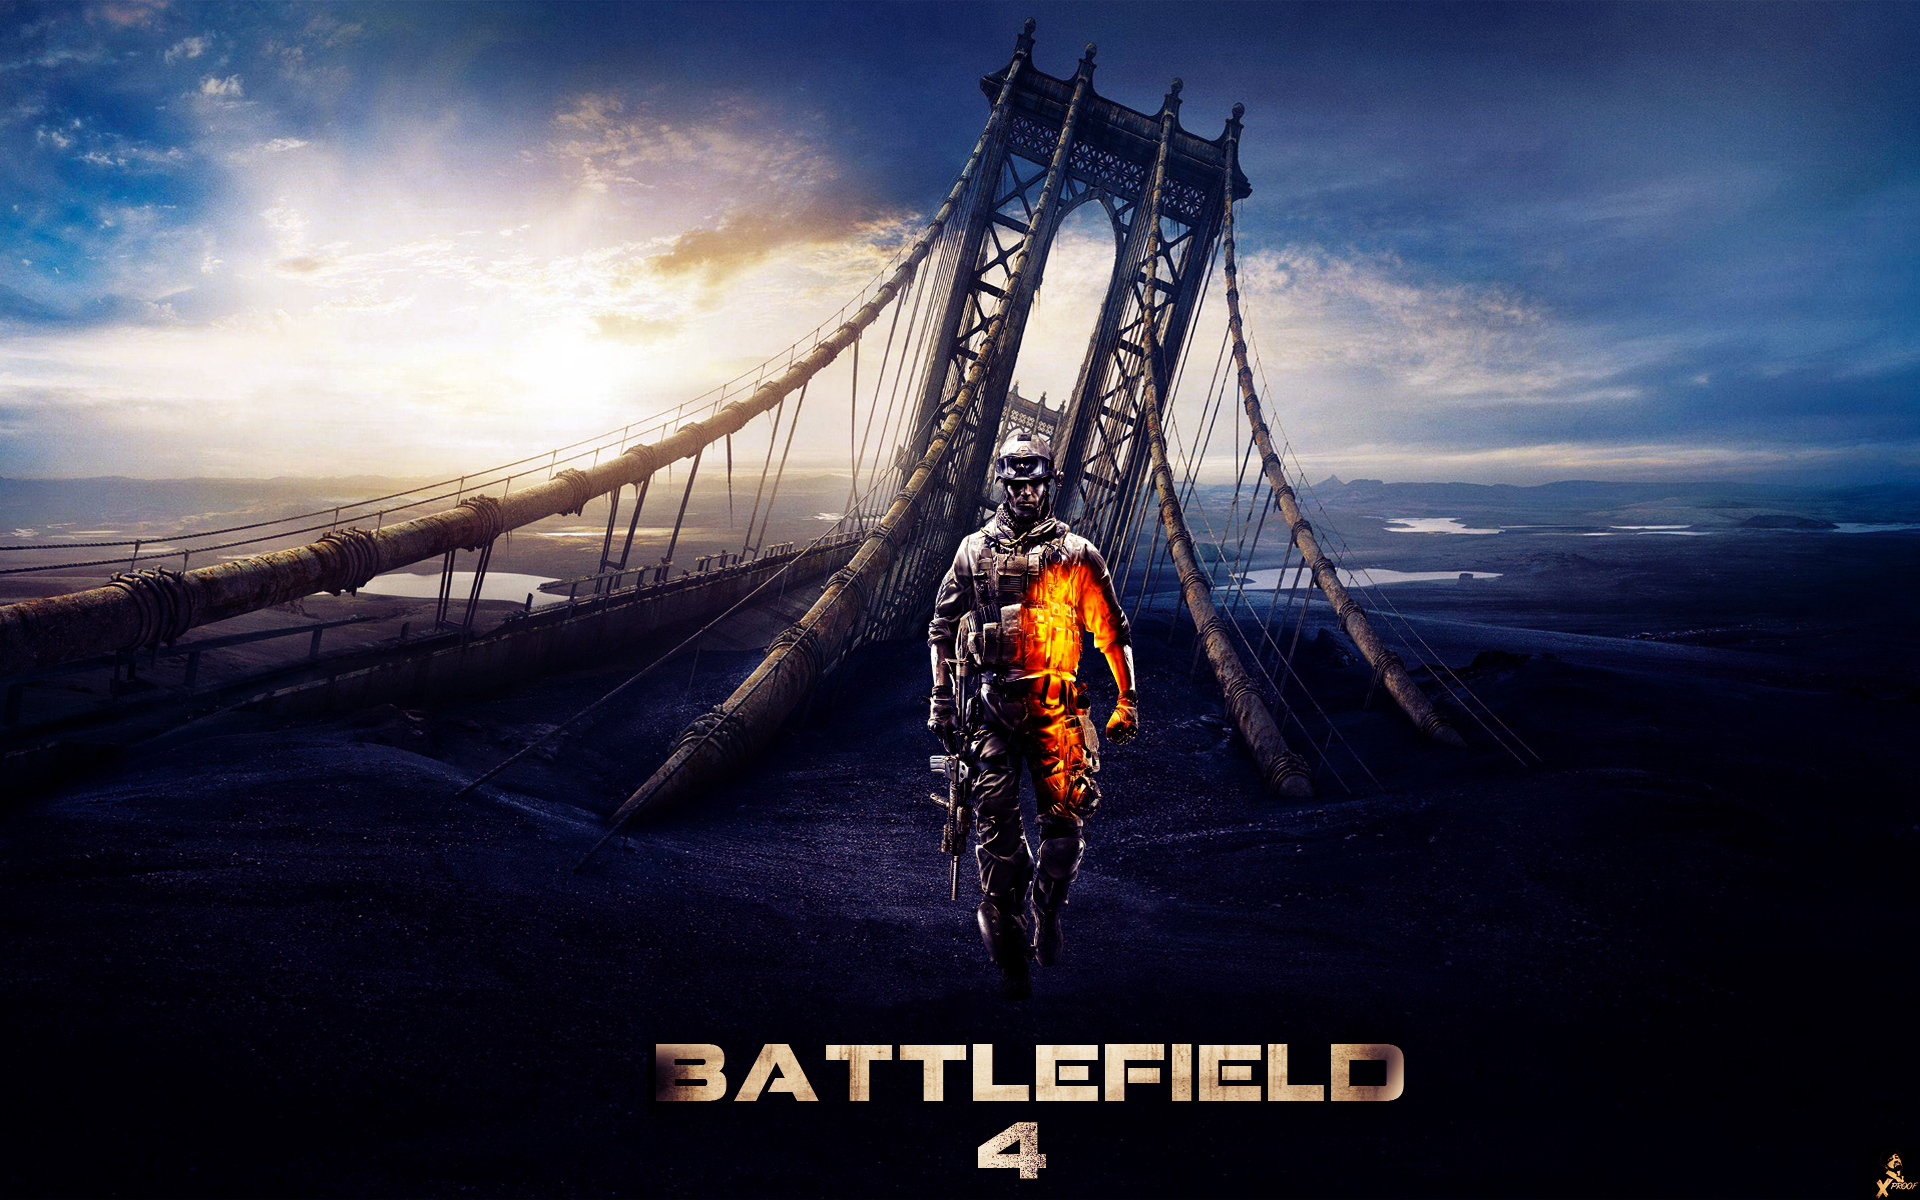 Battlefield 4 wallpaper 7304 1920x1200 px hdwallsource battlefield 4 wallpaper 7304 voltagebd Images